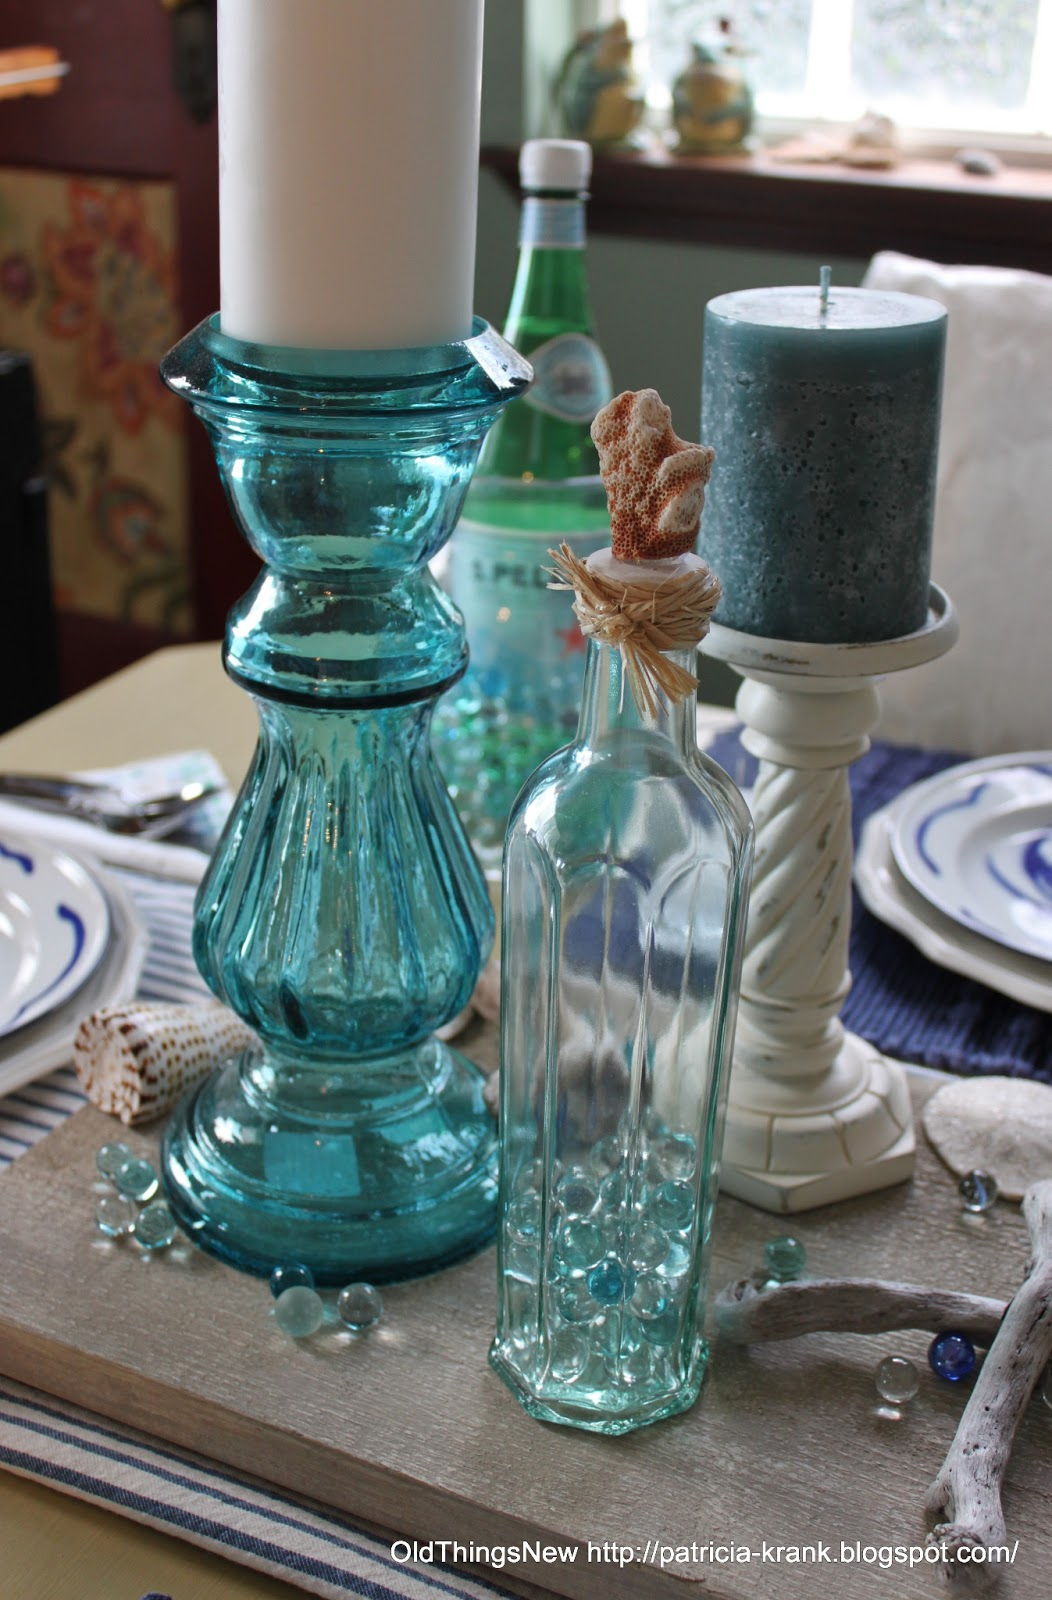 Homegoods Com Catalog 12Play4Fun  My favorite thing about the entire table  are the tall aqua candlesticks I found on sale. Homegoods Com Catalog   Kisekae Rakuen com